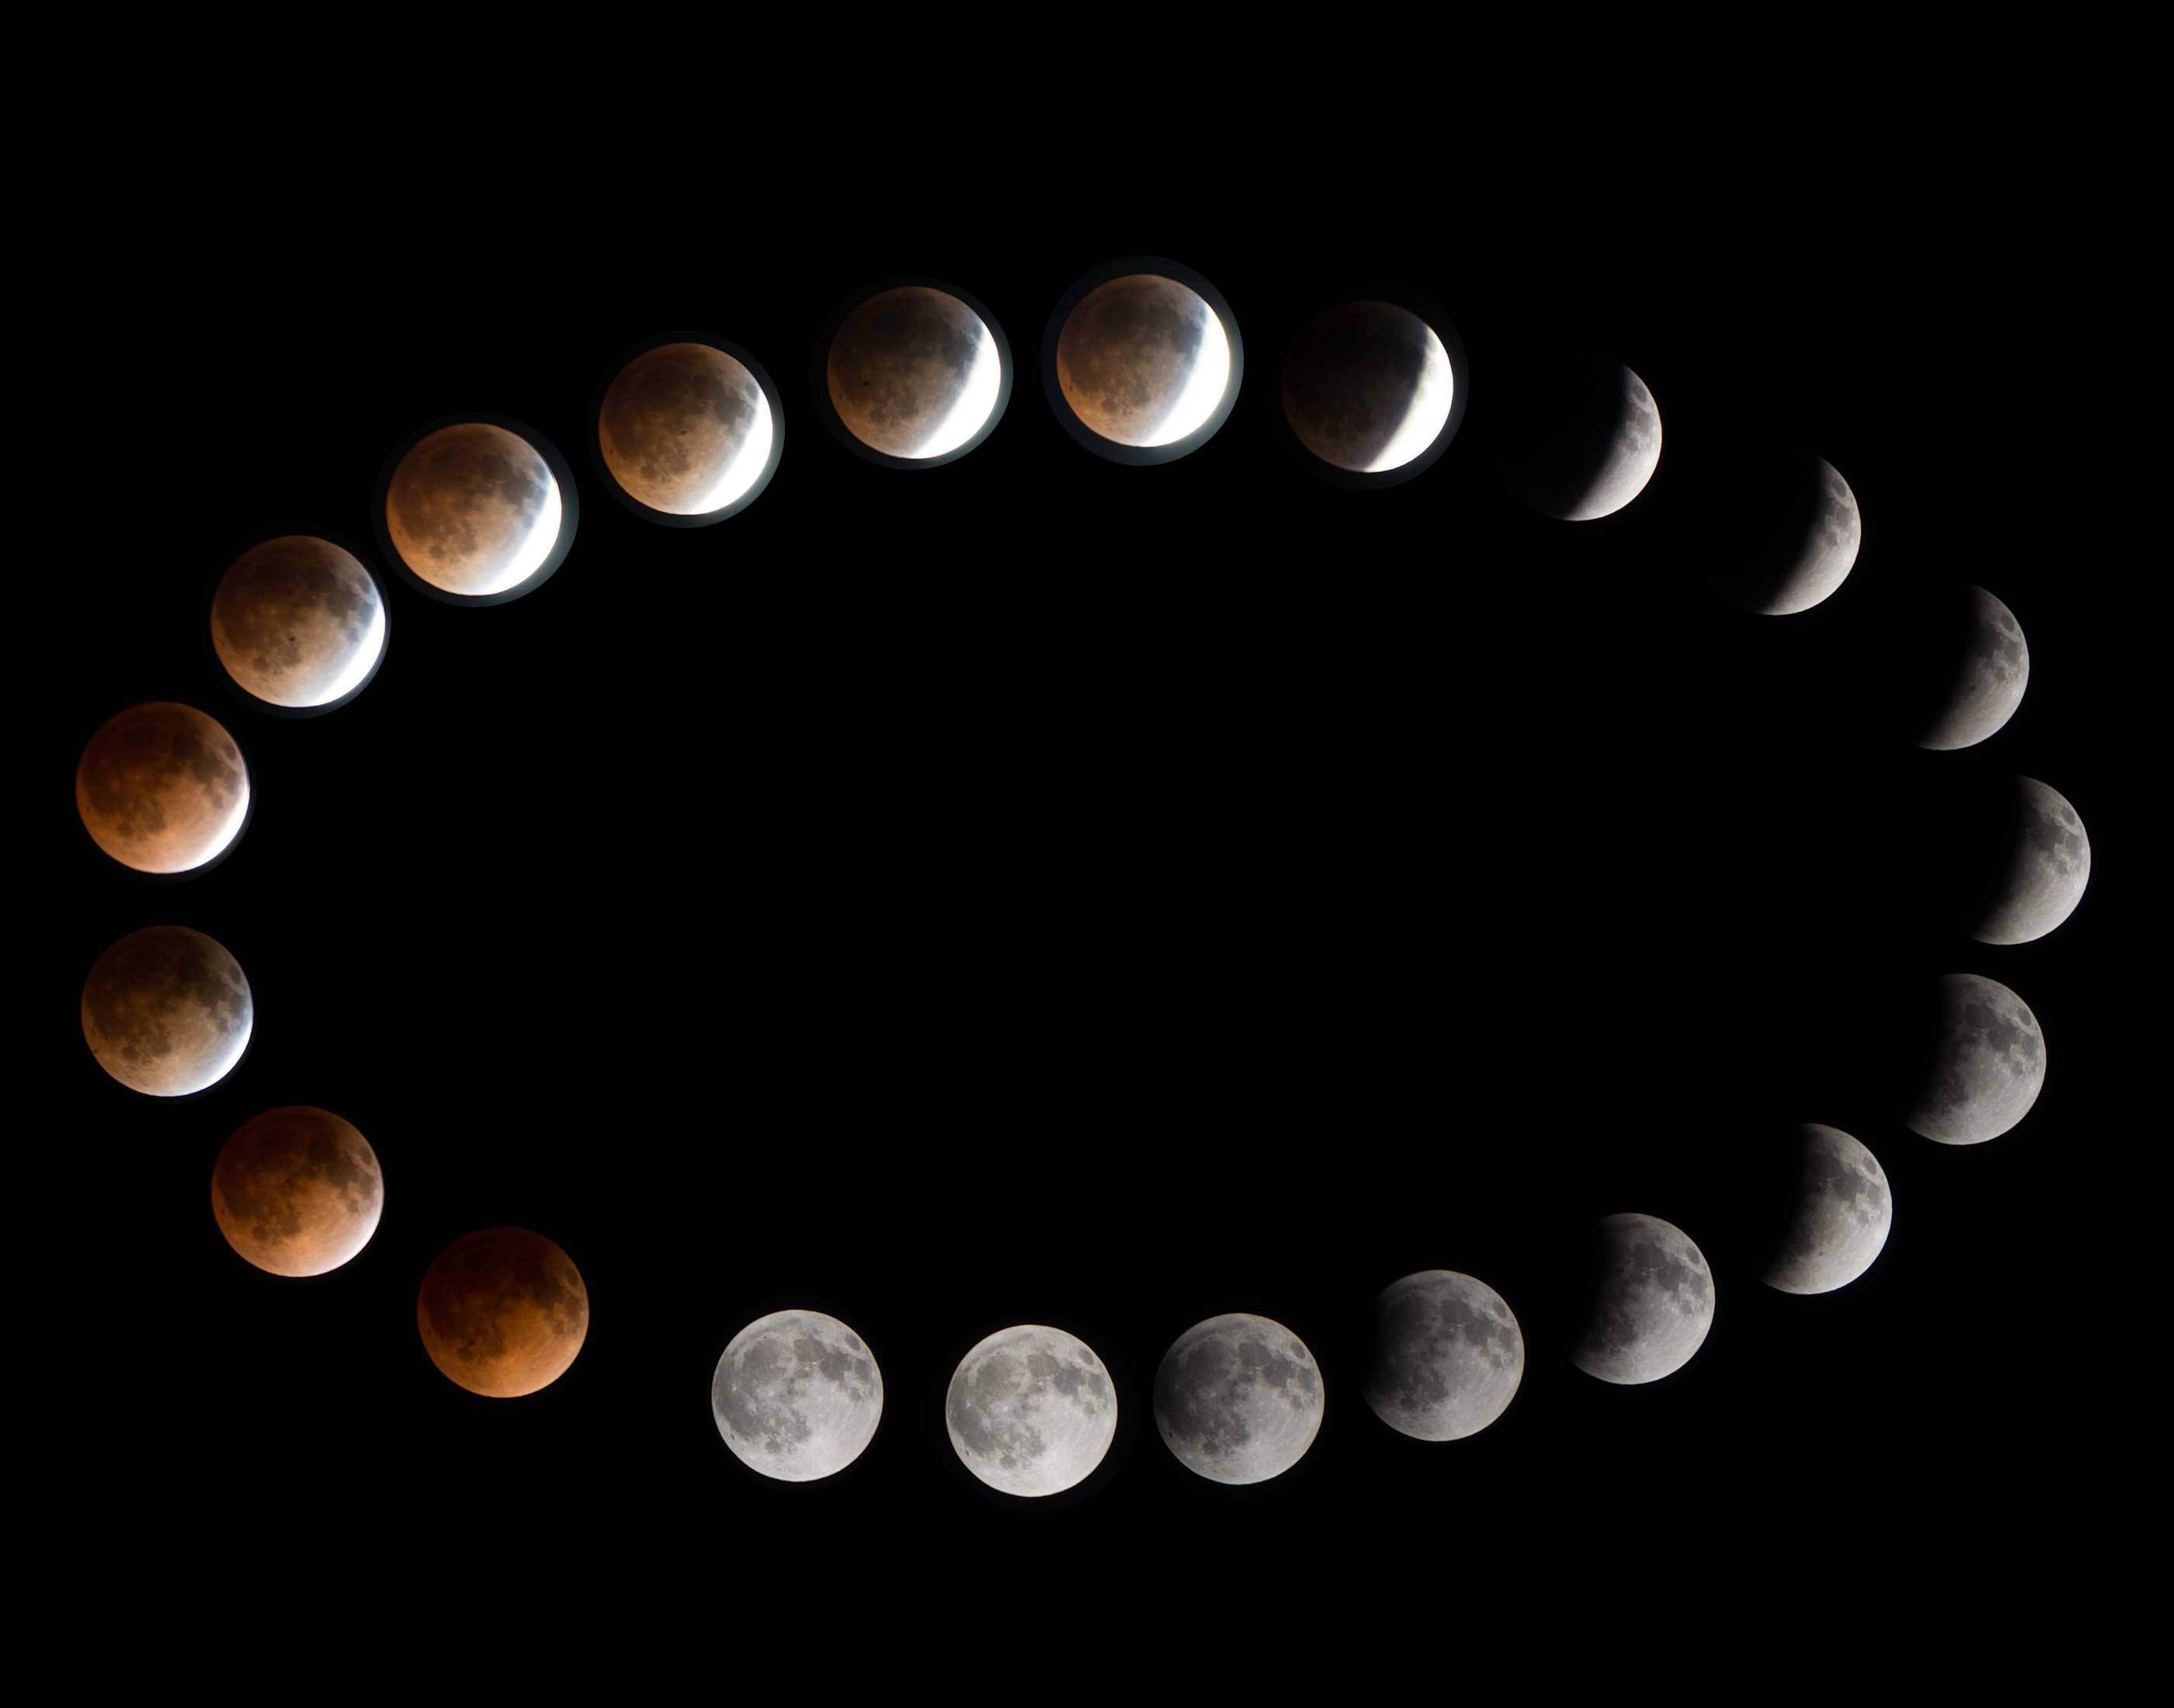 David Neesley of Naperville won our April Photo Finish contest with this incredible work showing various stages of a lunar eclipse.